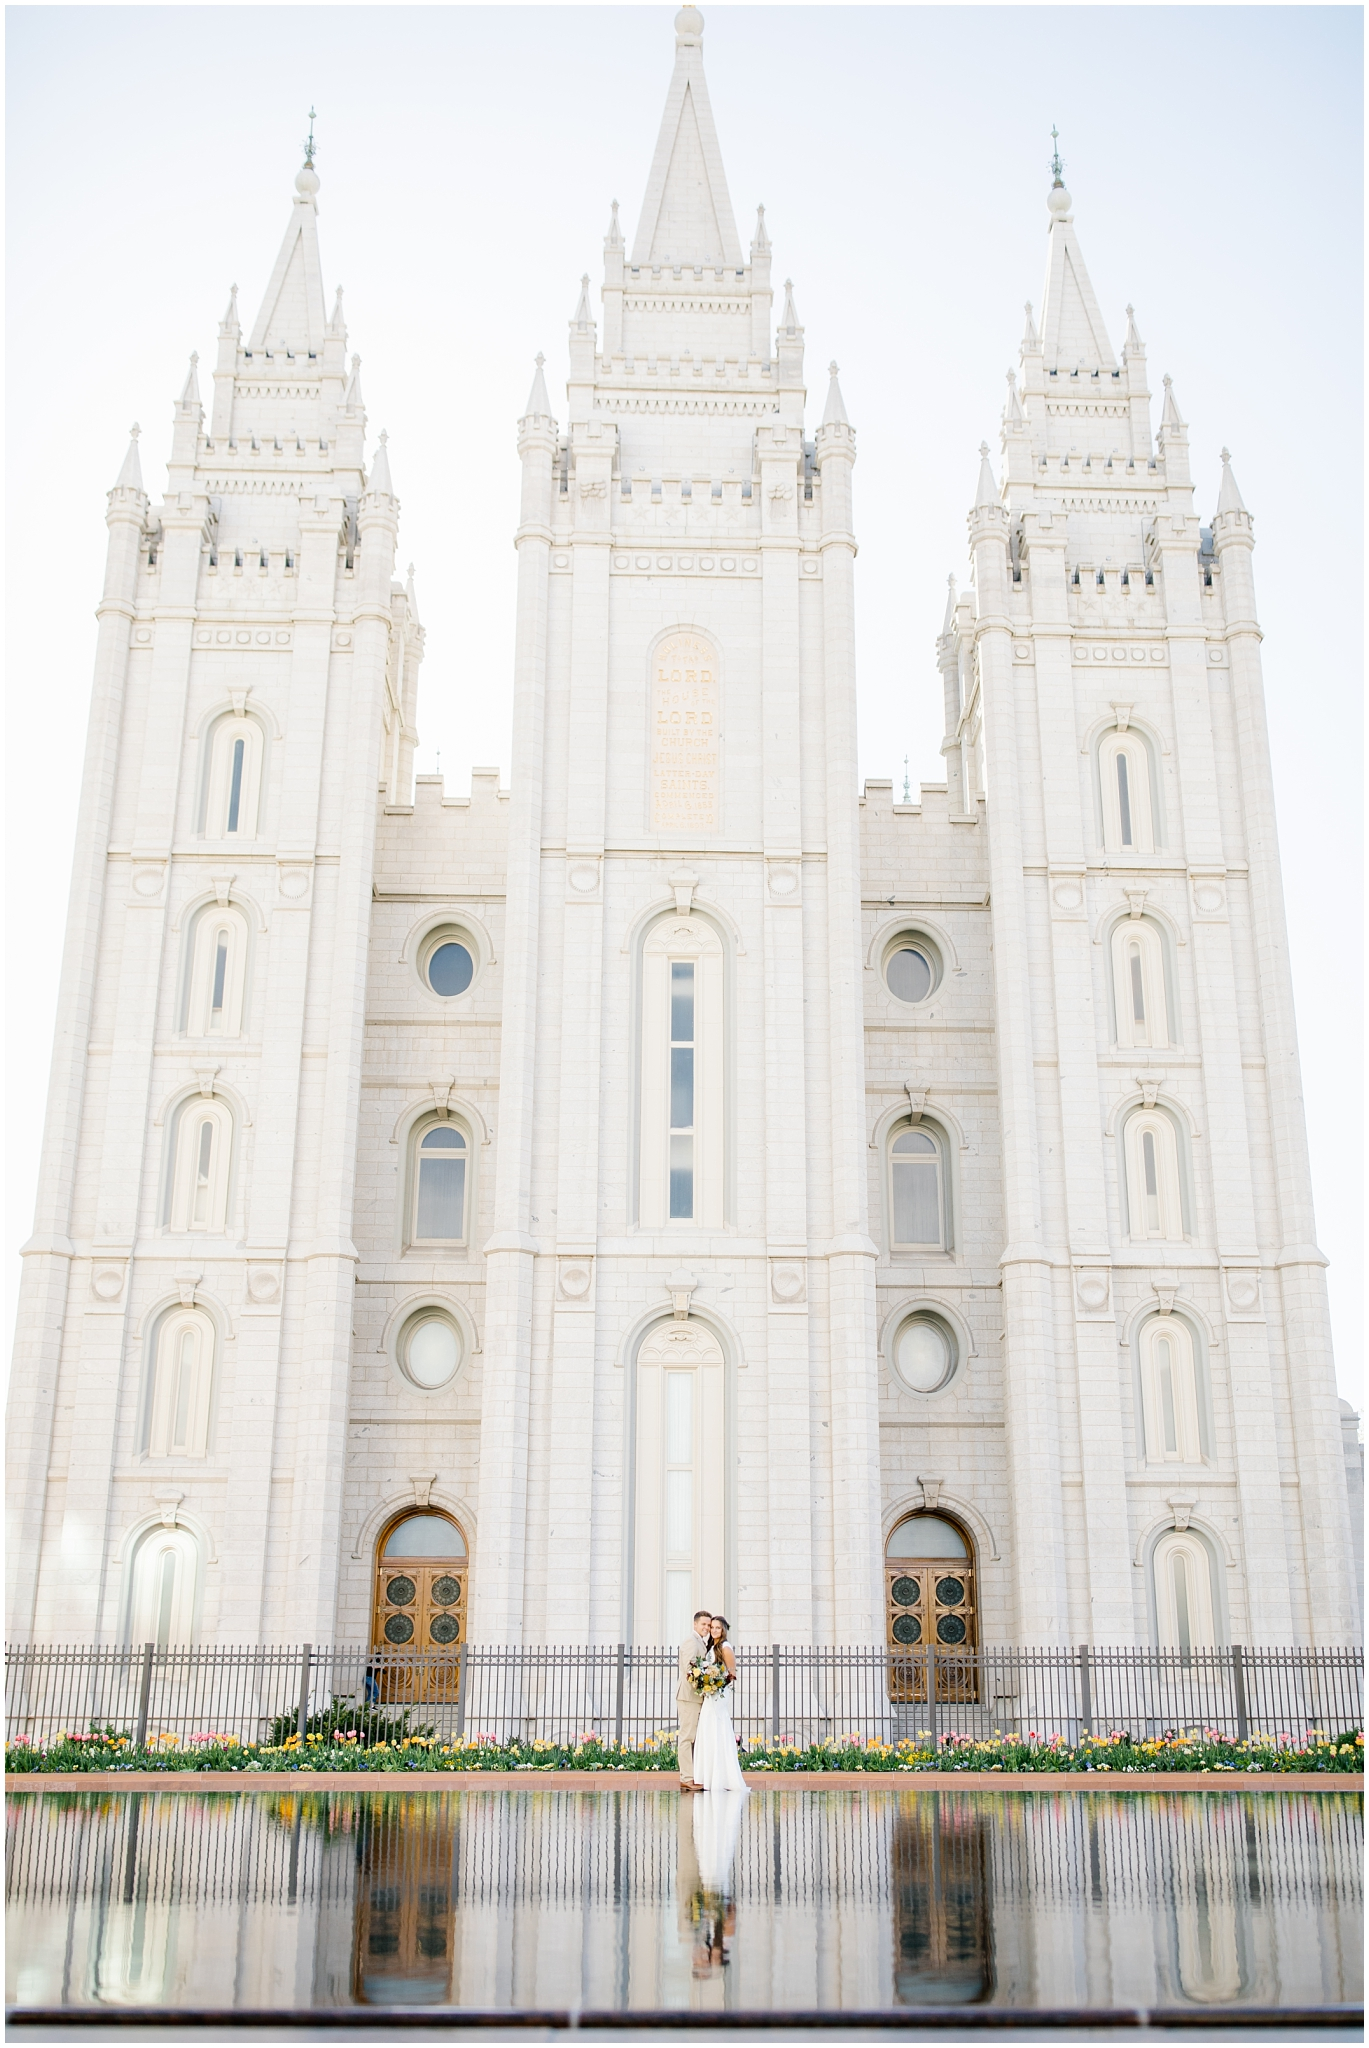 JC-Wedding-207_Lizzie-B-Imagery-Utah-Wedding-Photographer-Park-City-Salt-Lake-City-Temple-Joseph-Smith-Memorial-Building-Empire-Room.jpg